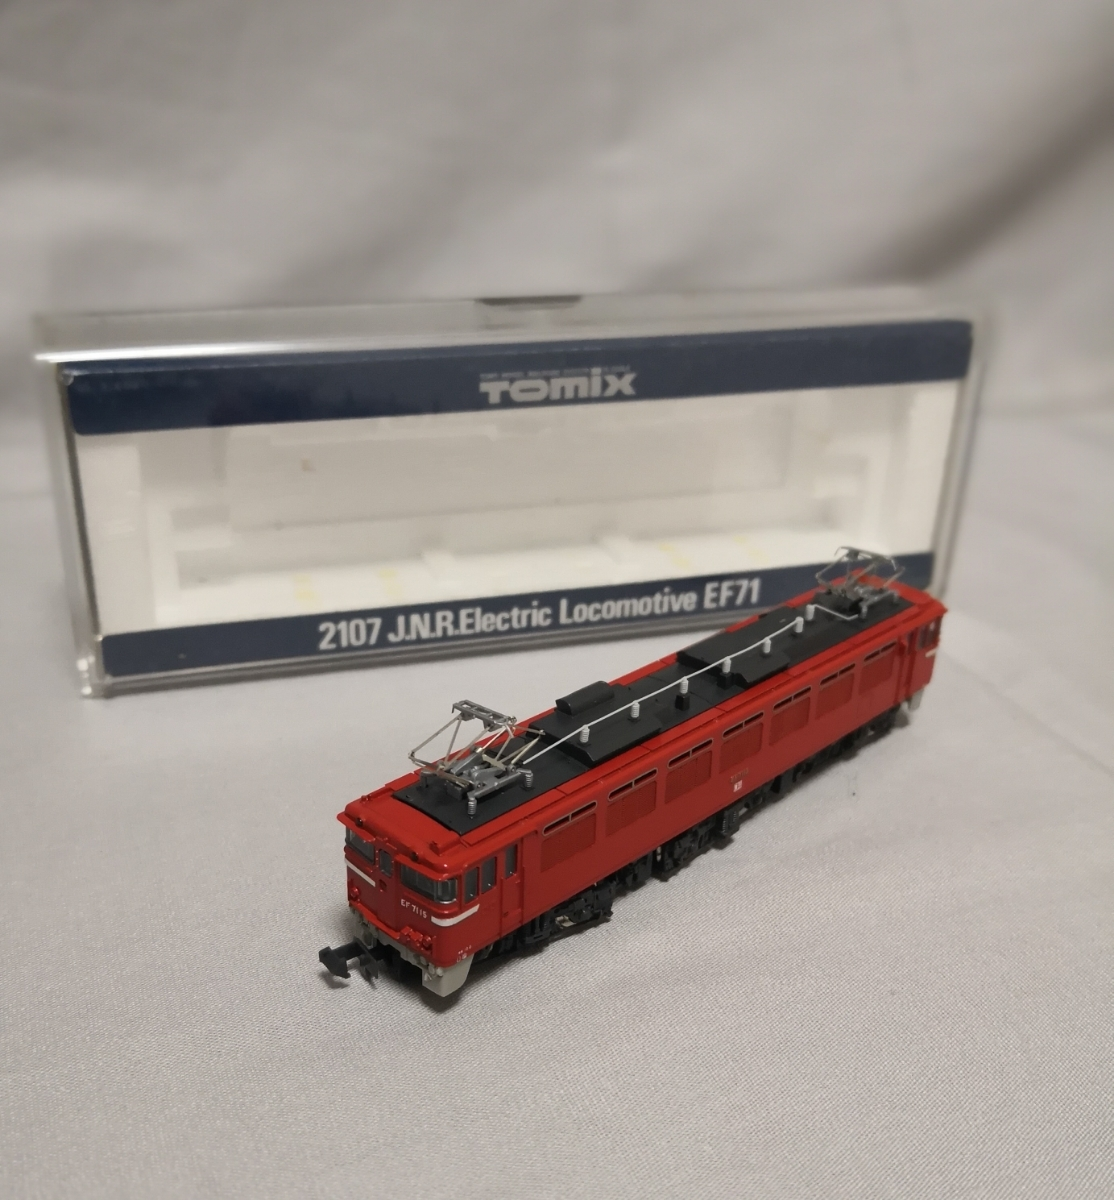 [ N gauge National Railways electric locomotive EF71 ]*Tomix made * secondhand goods junk treatment .*100 jpy start selling out *